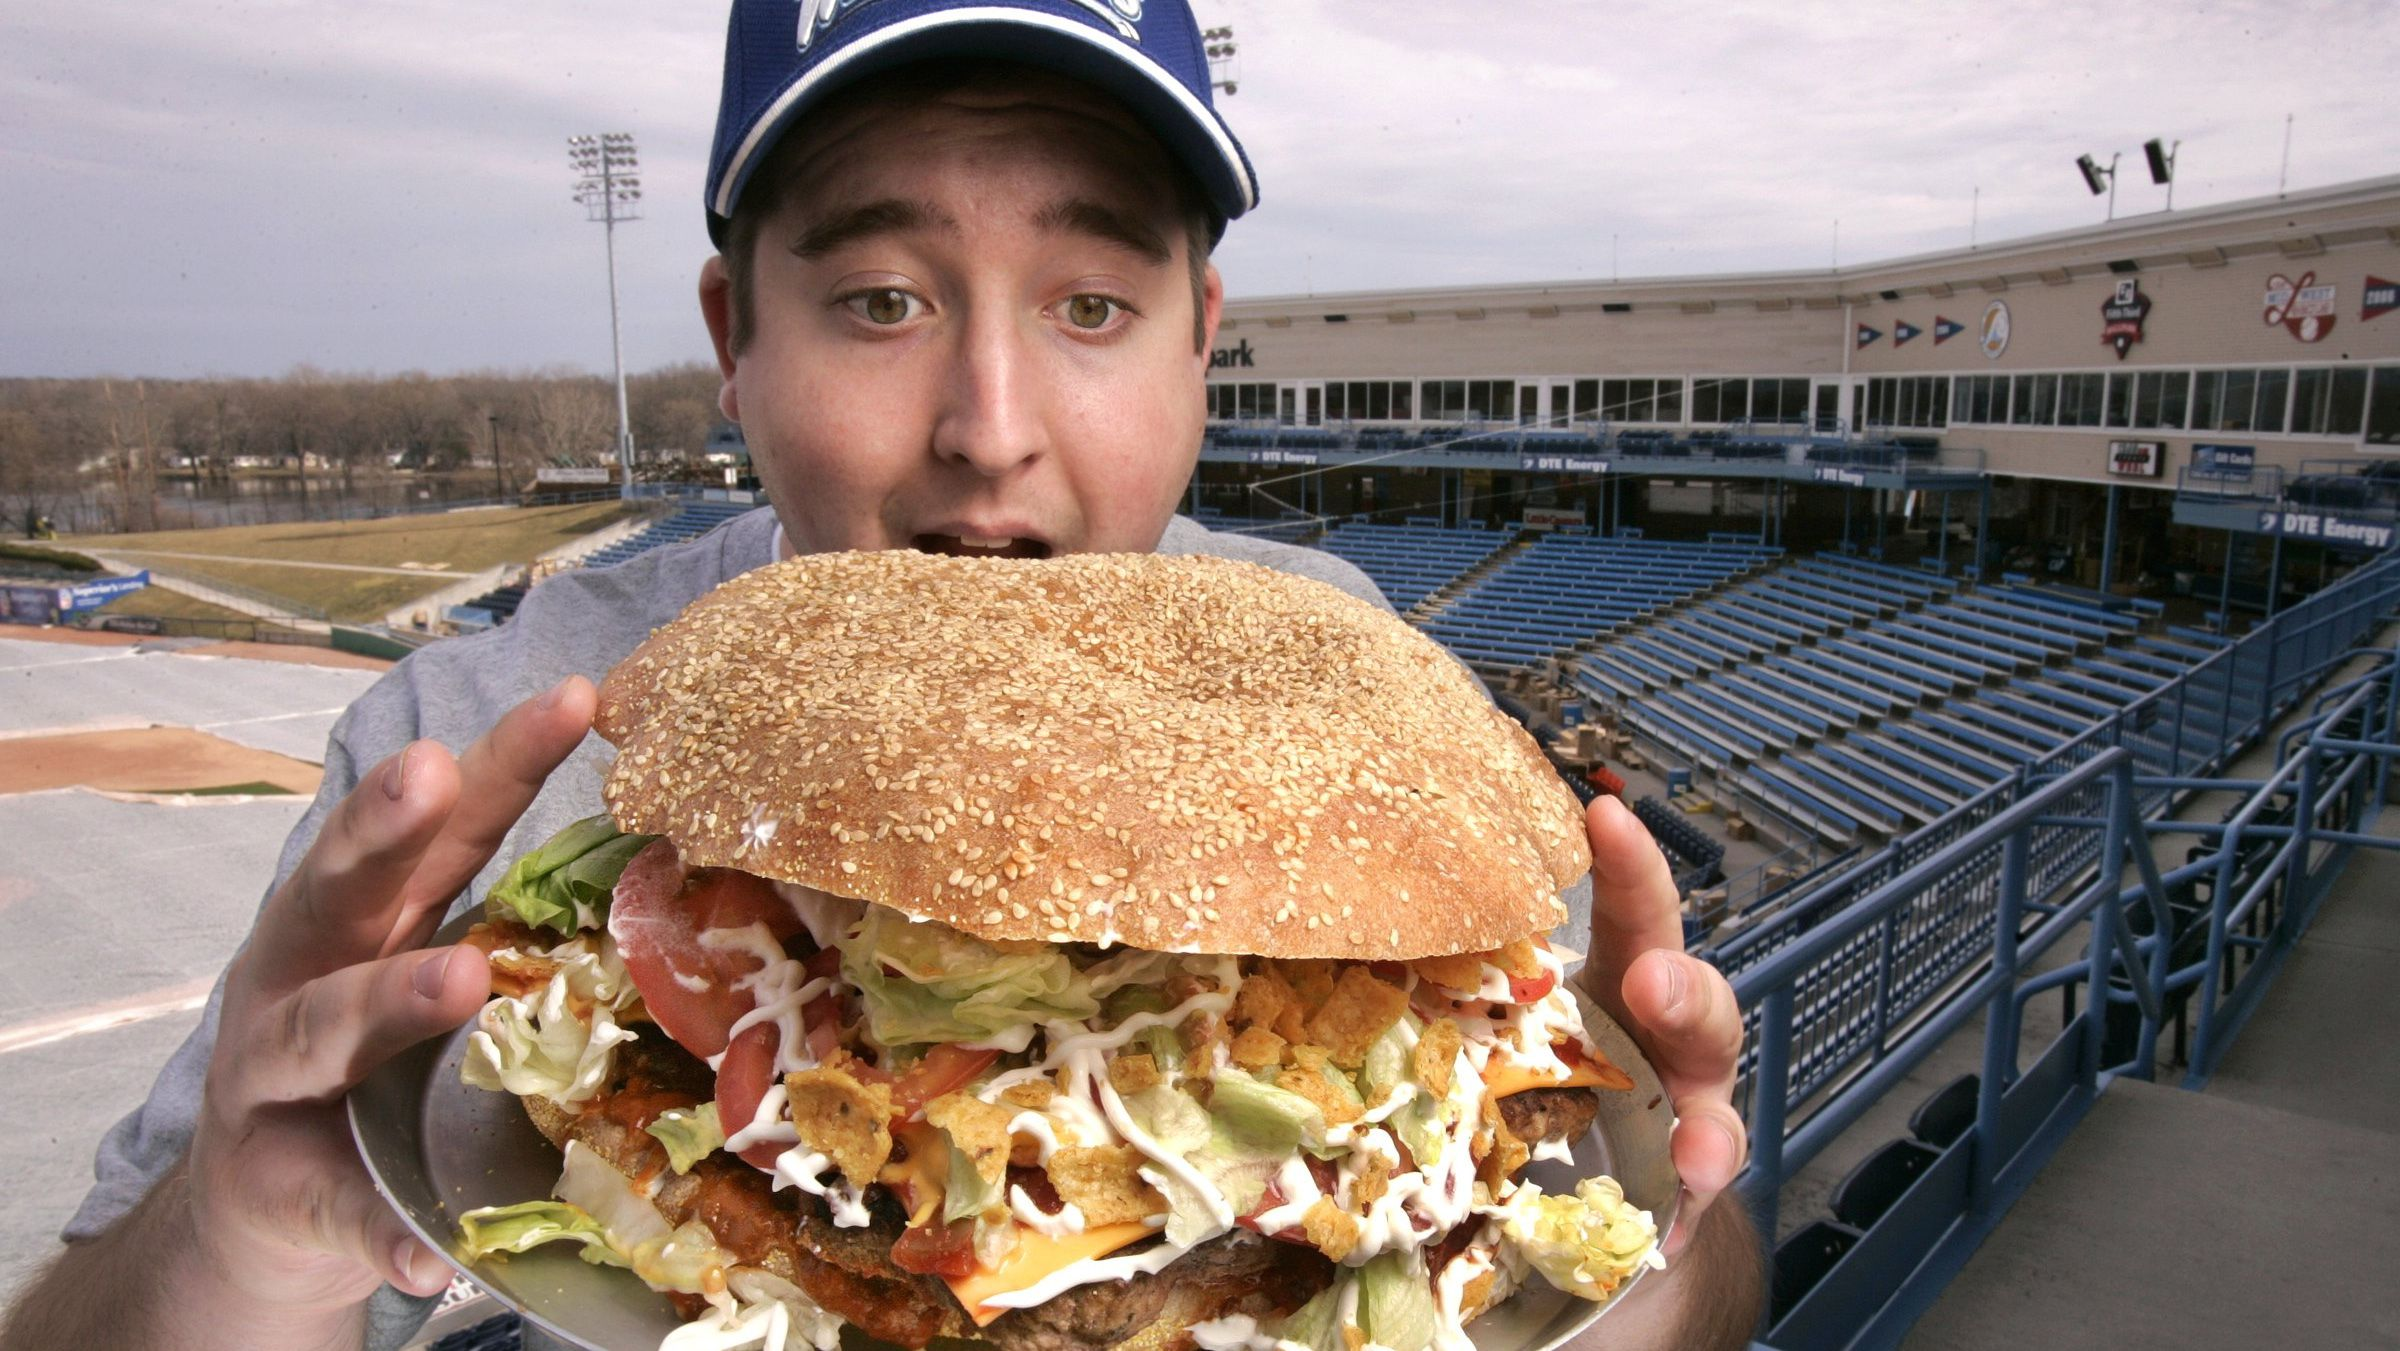 Josh Kowalczyk, an intern with the West Michigan Whitecaps, in Comstock Park, Mich. poses for a photo March 24, 2009. The $20 burger will feature a sesame-seed bun made from a pound of dough, five 1/3-pound beef patties, five slices of cheese, nearly a cup of chili and liberal doses of salsa and corn chips. (AP Photo/The Grand Rapids Press, Rex Larsen)